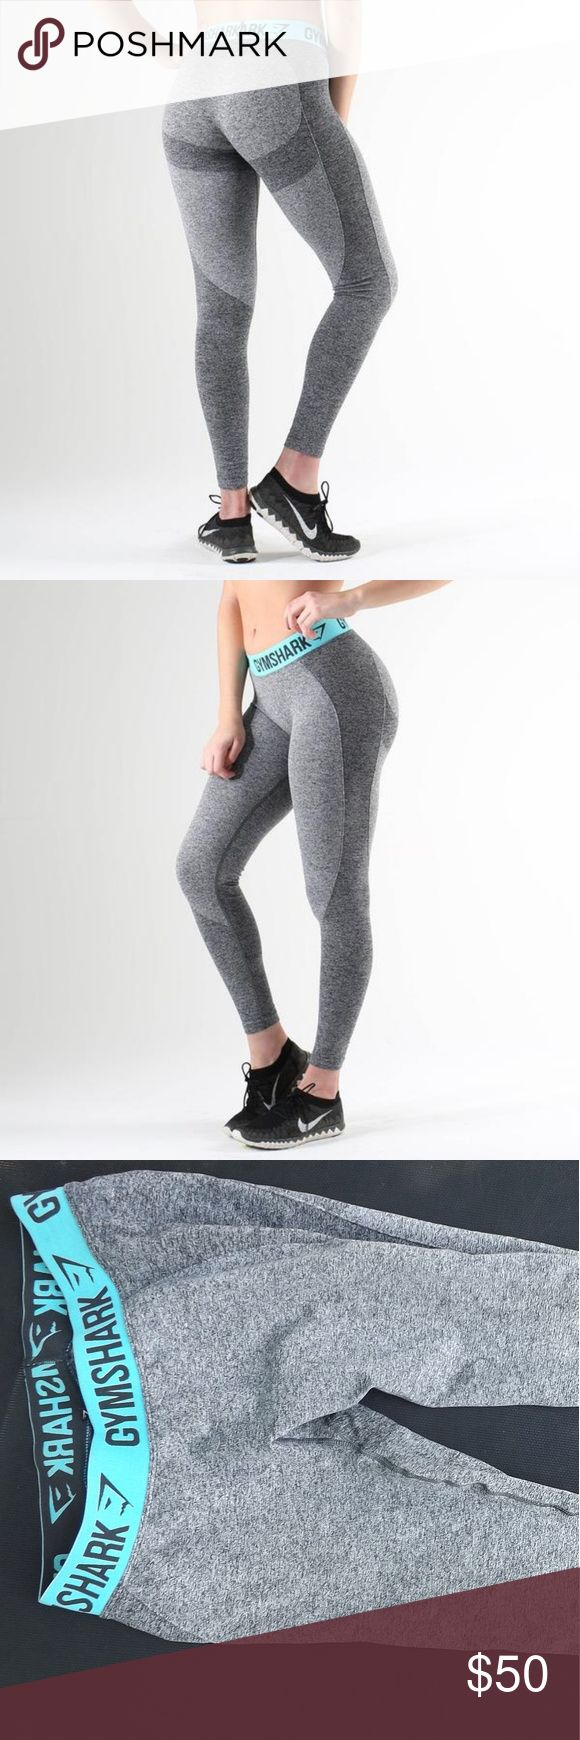 Gym Shark Flex Leggings, v1 Gym Shark Flex Leggings, With a form-flattering pattern, Super soft/ Stretchy, moisture-wicking seamless knit. Gym Shark sells out within minutes, these are hard to get your hands on. Please no offers less than what im asking. Some people sell these items for over $100 on ebay. Thanks! lululemon athletica Pants